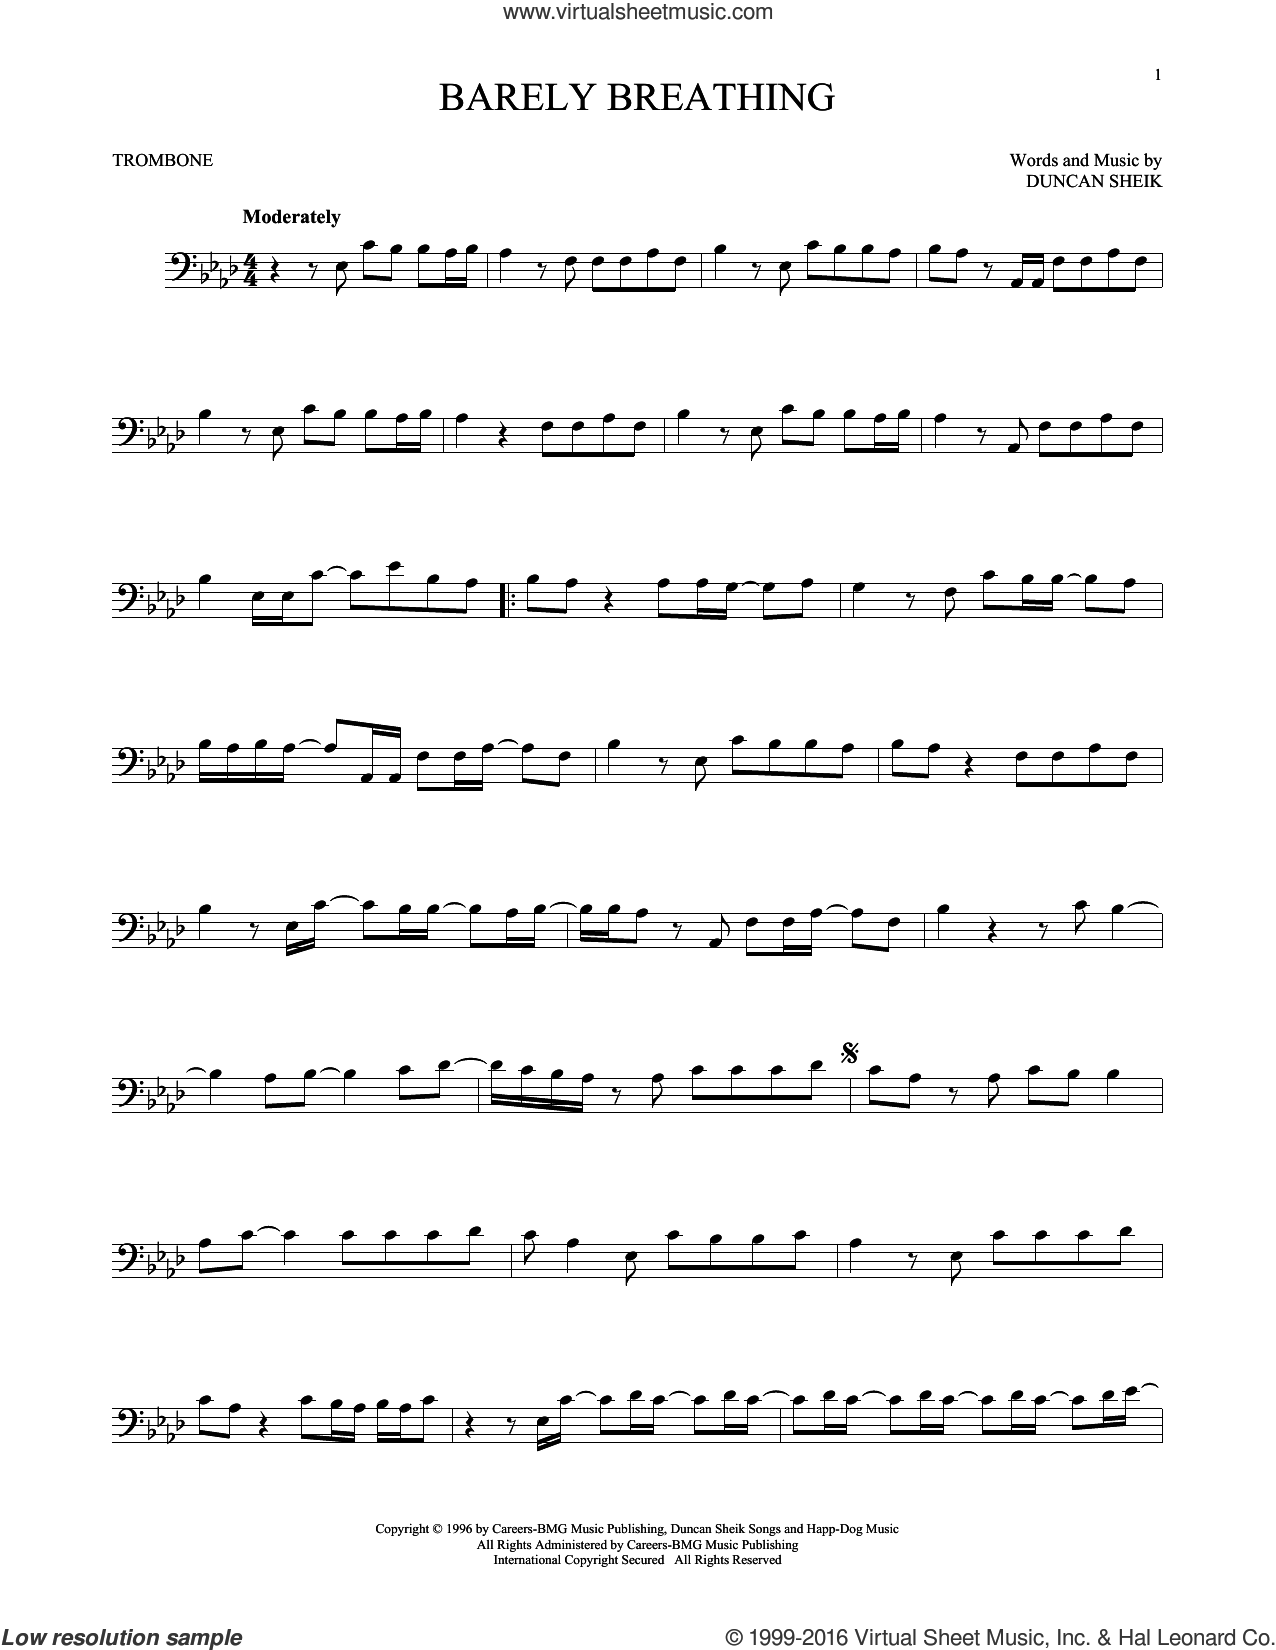 Barely Breathing sheet music for trombone solo by Duncan Sheik, intermediate skill level